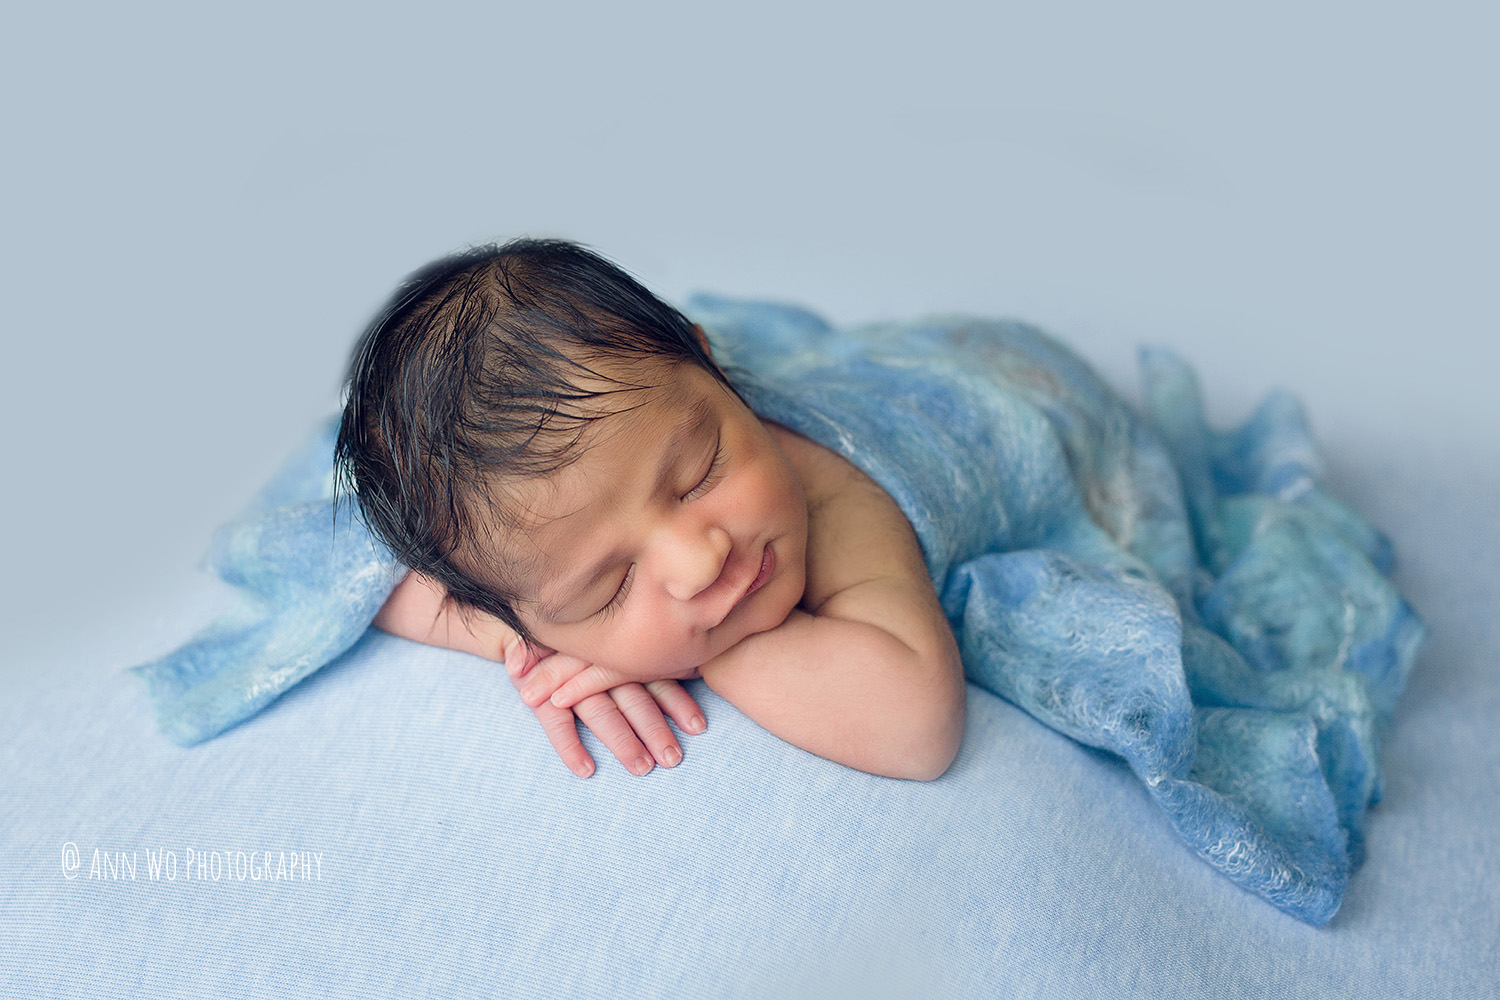 newborn-photography-berkshire-ann-wo-02.JPG